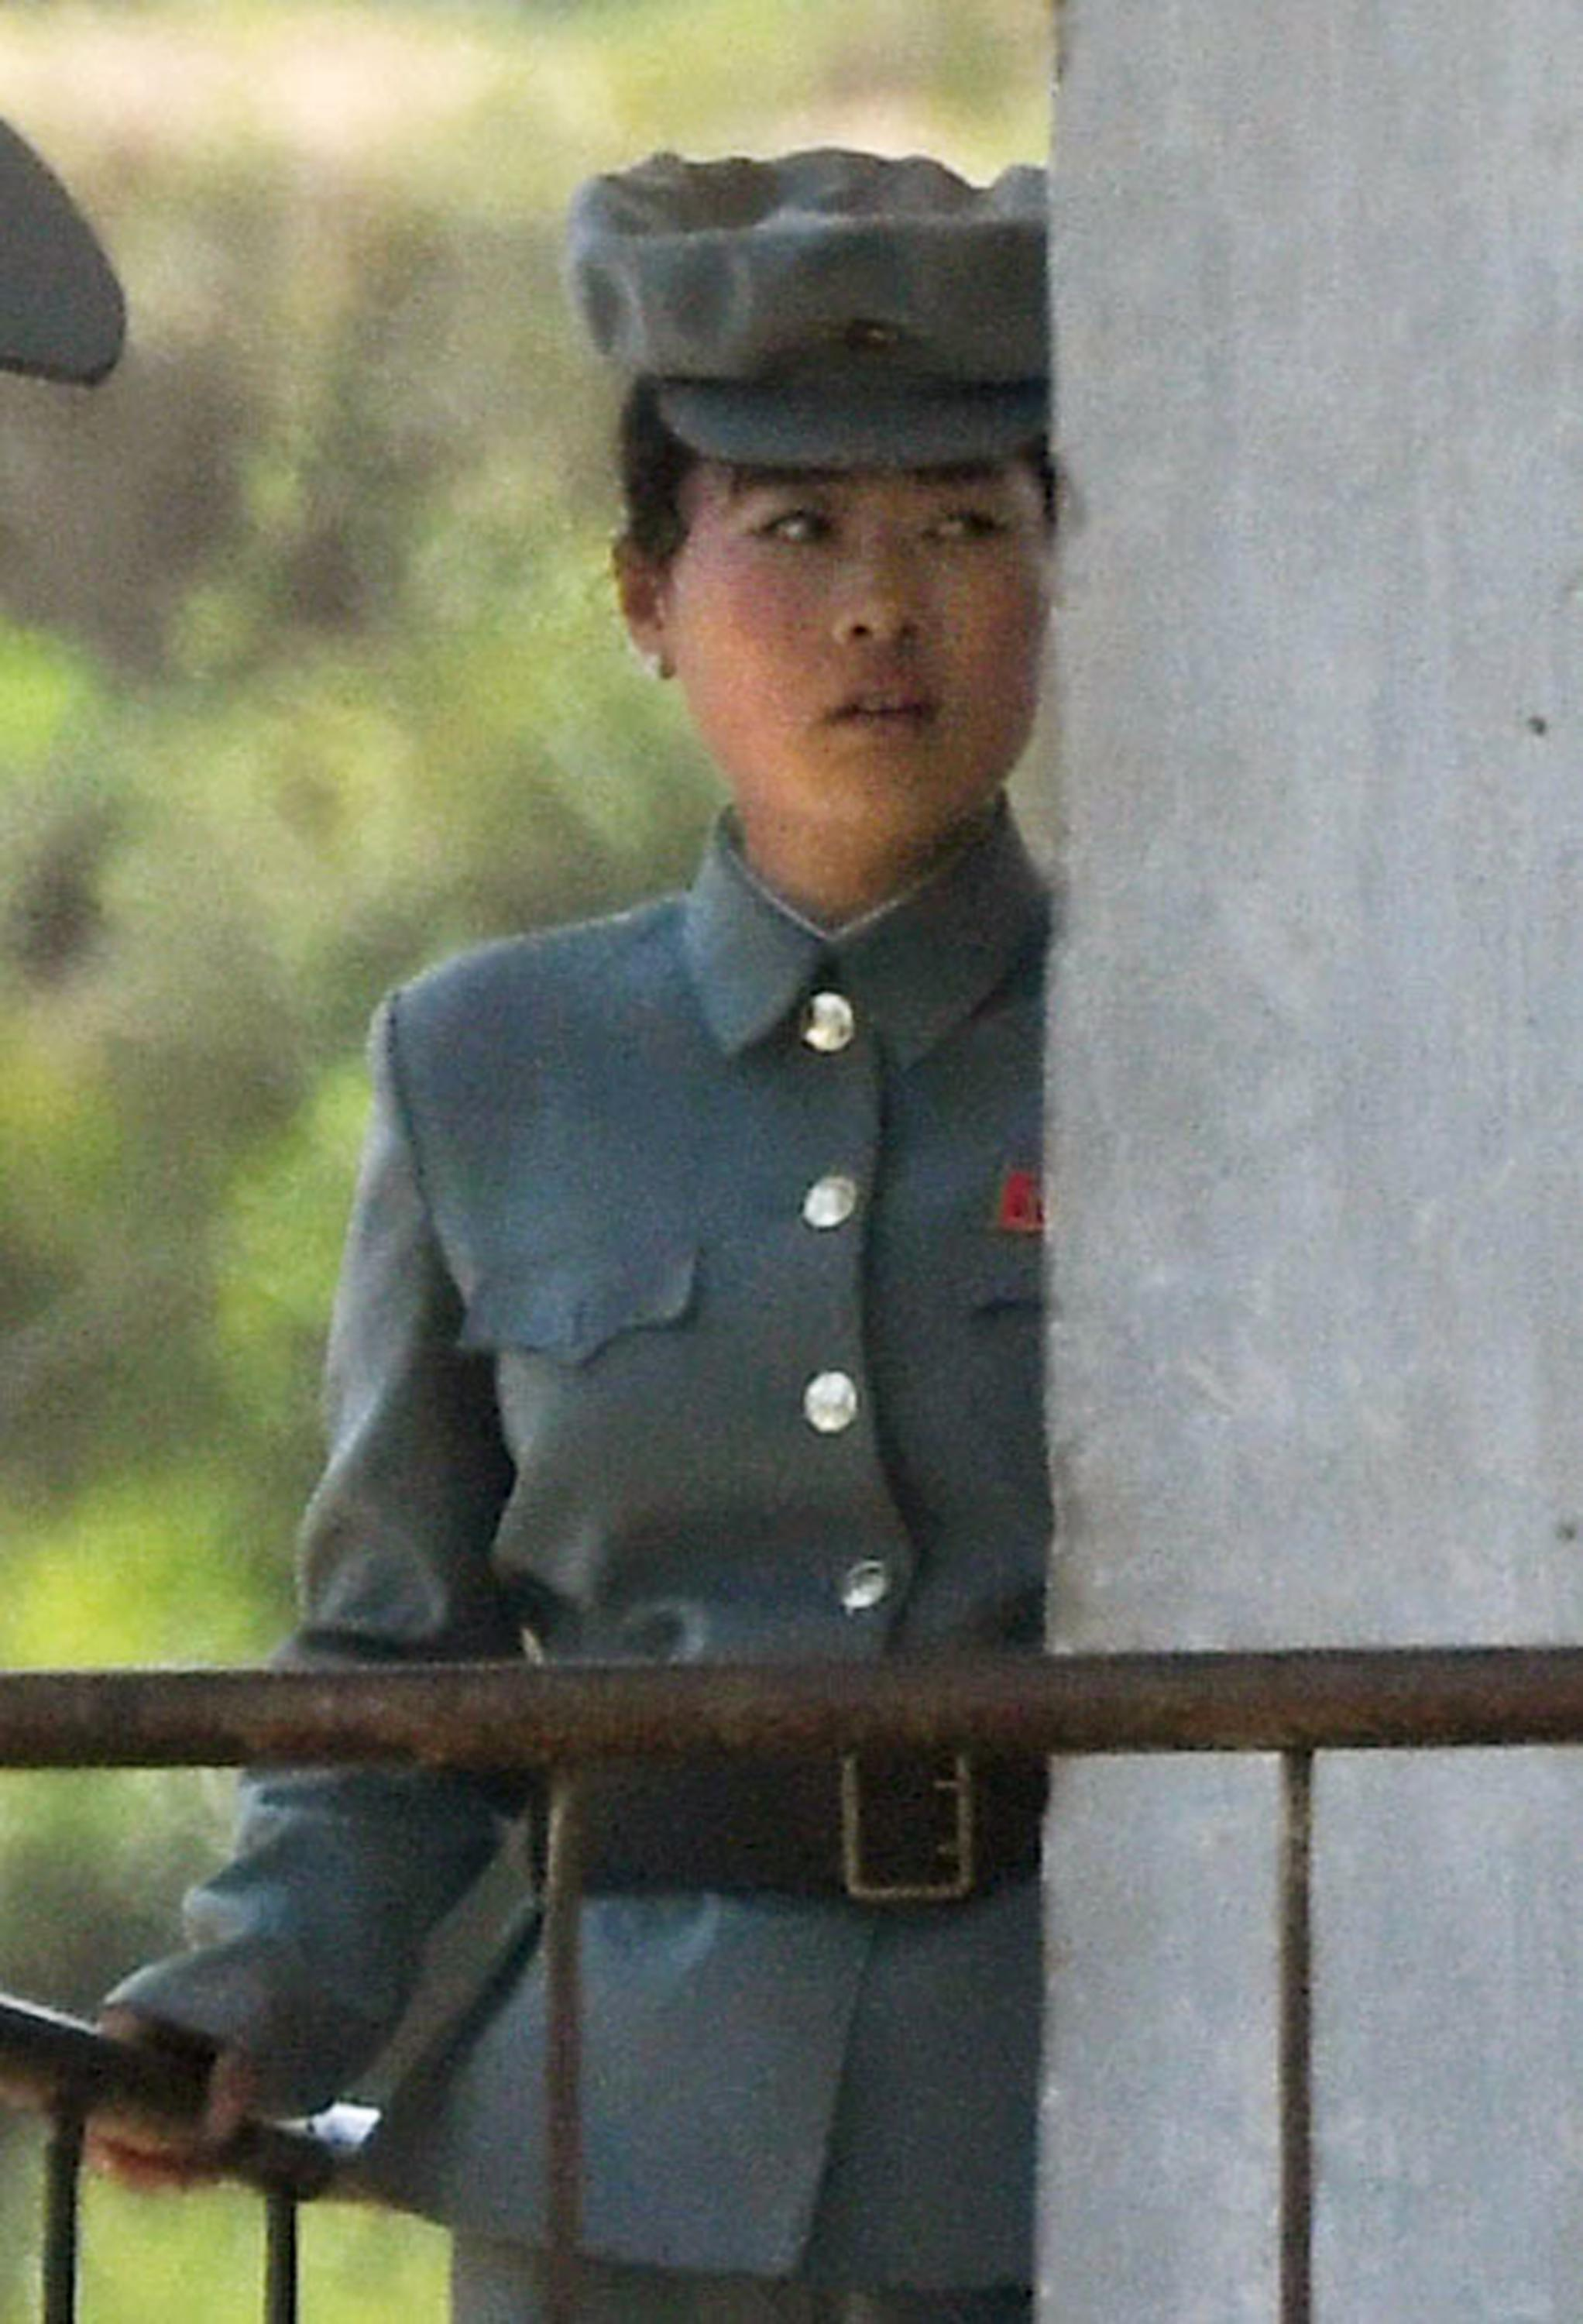 A North Korean female soldier guards the border near the Chinese border town of Dandong, northeastern Liaoning province of China Wednesday, July 5, 2017. (Minoru Iwasaki/Kyodo News via AP)